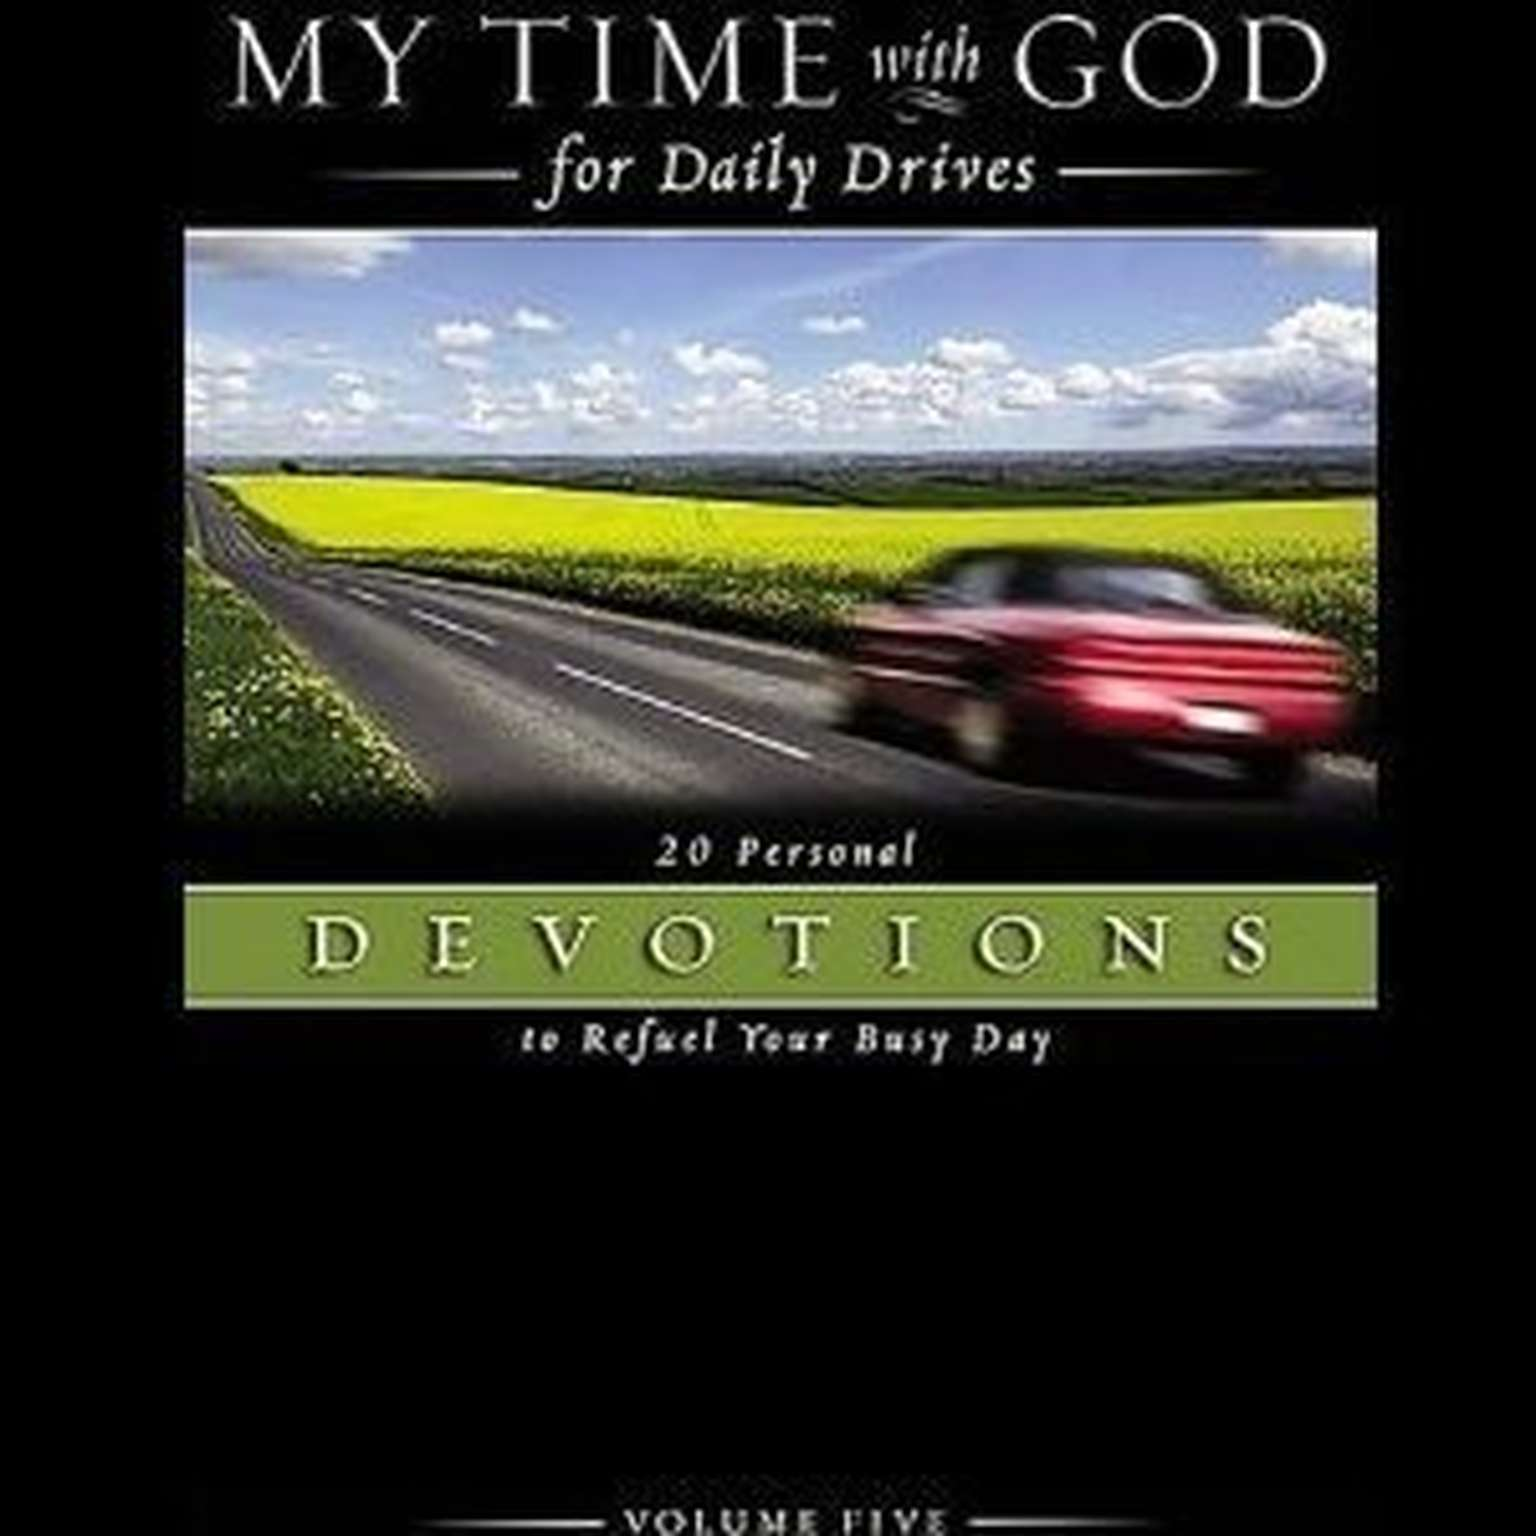 Printable My Time With God For Daily Drives: Vol. 5: 20 Personal Devotions To Refuel Your Day Audiobook Cover Art